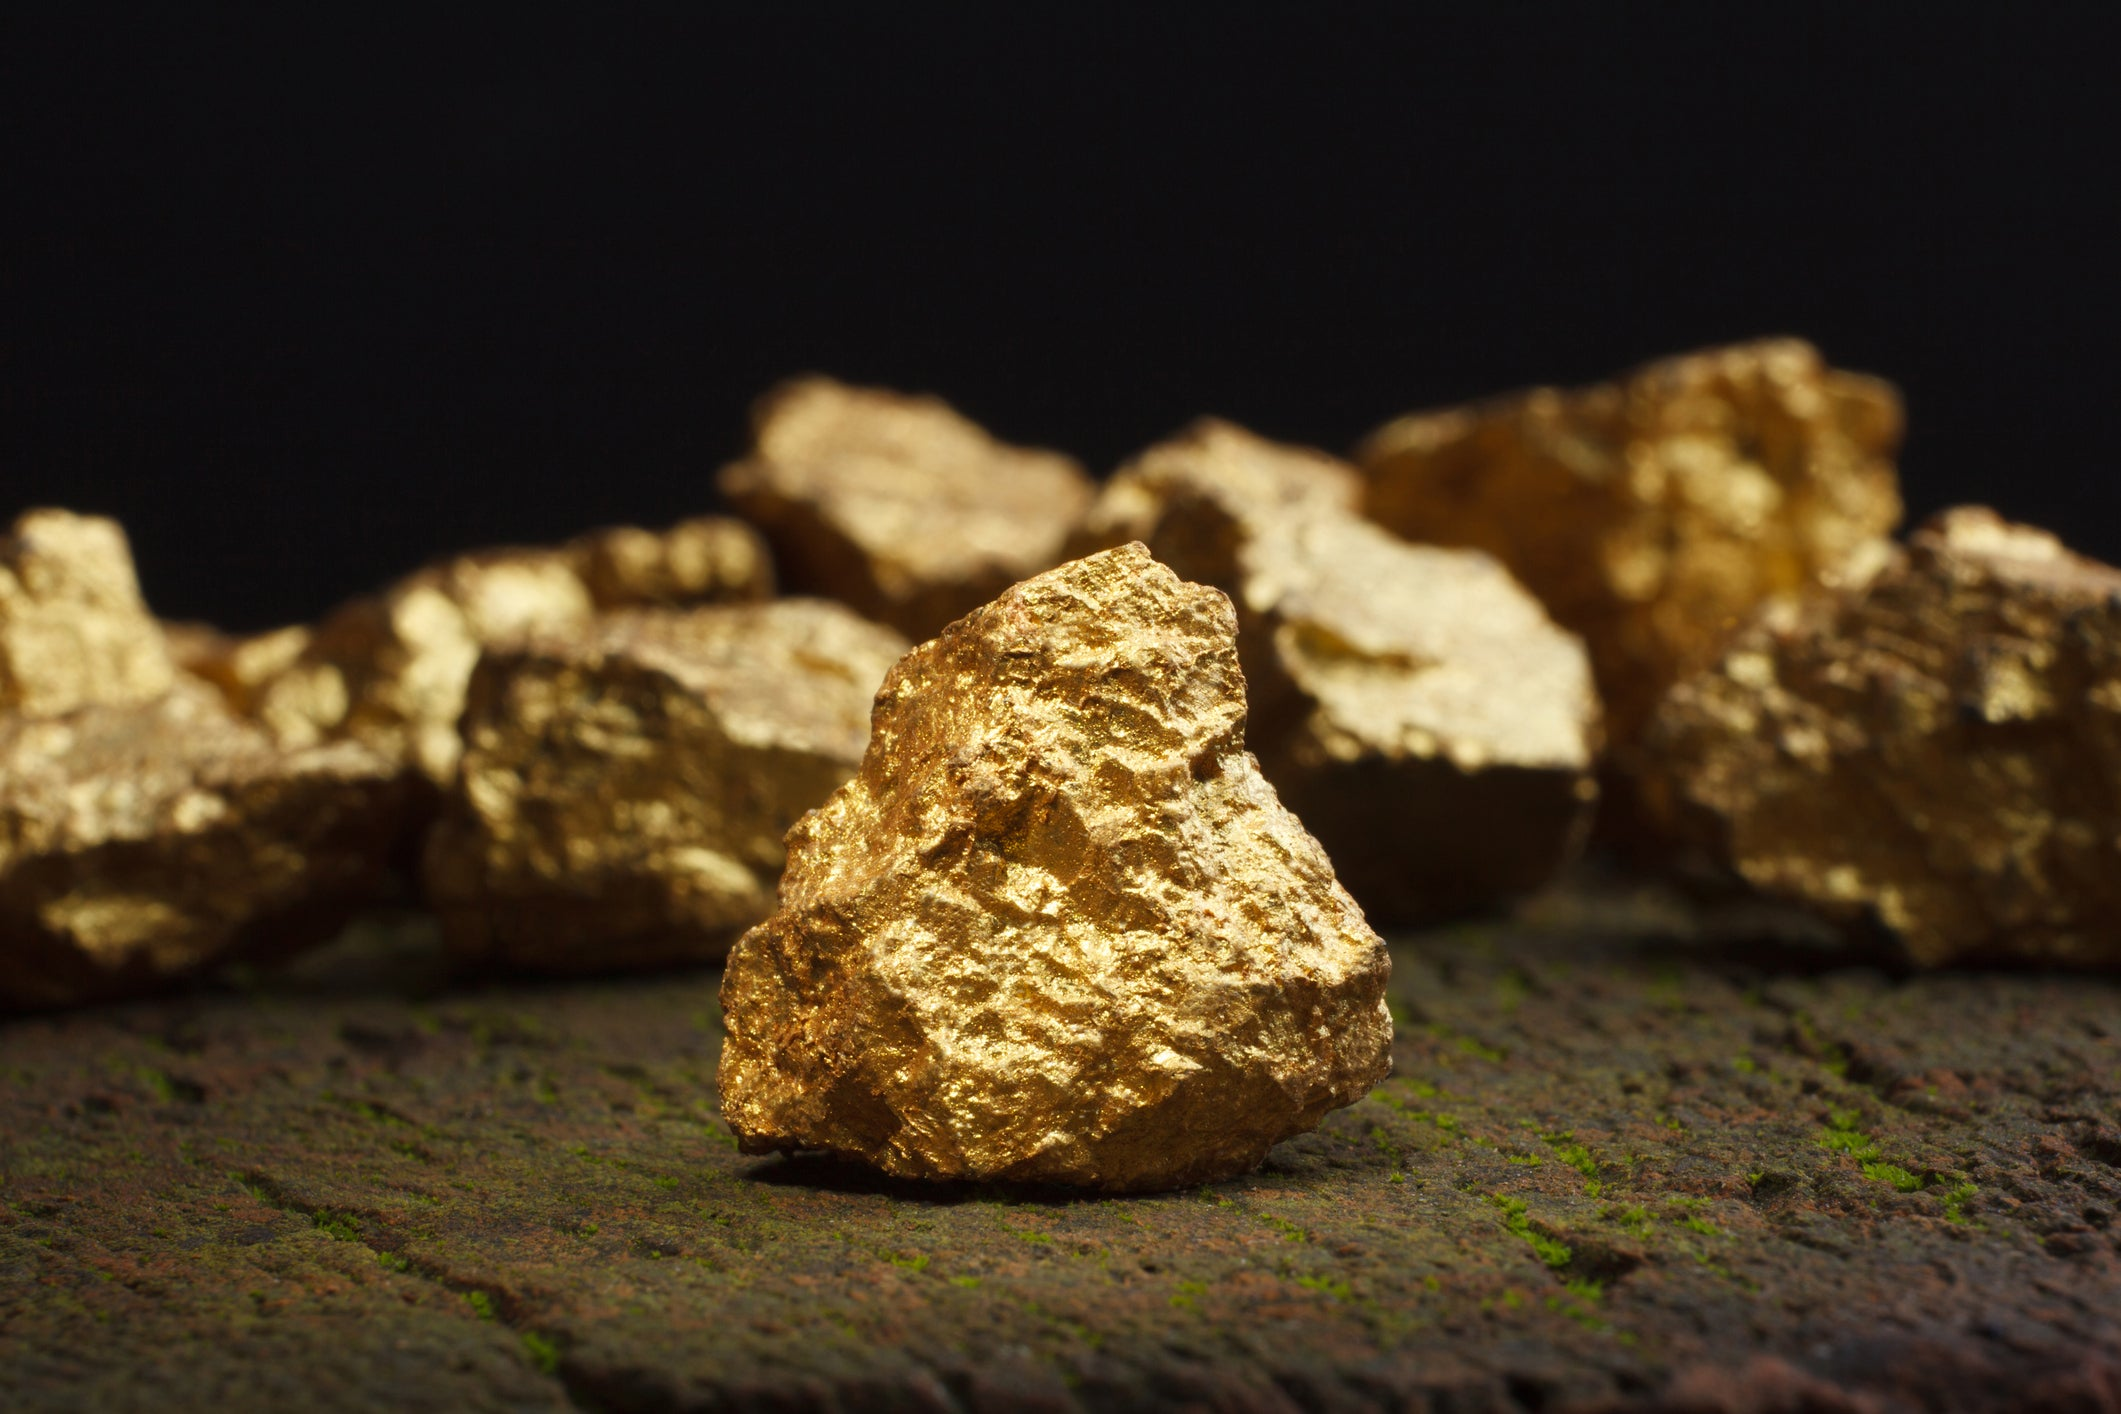 Close-up of gold nuggets.